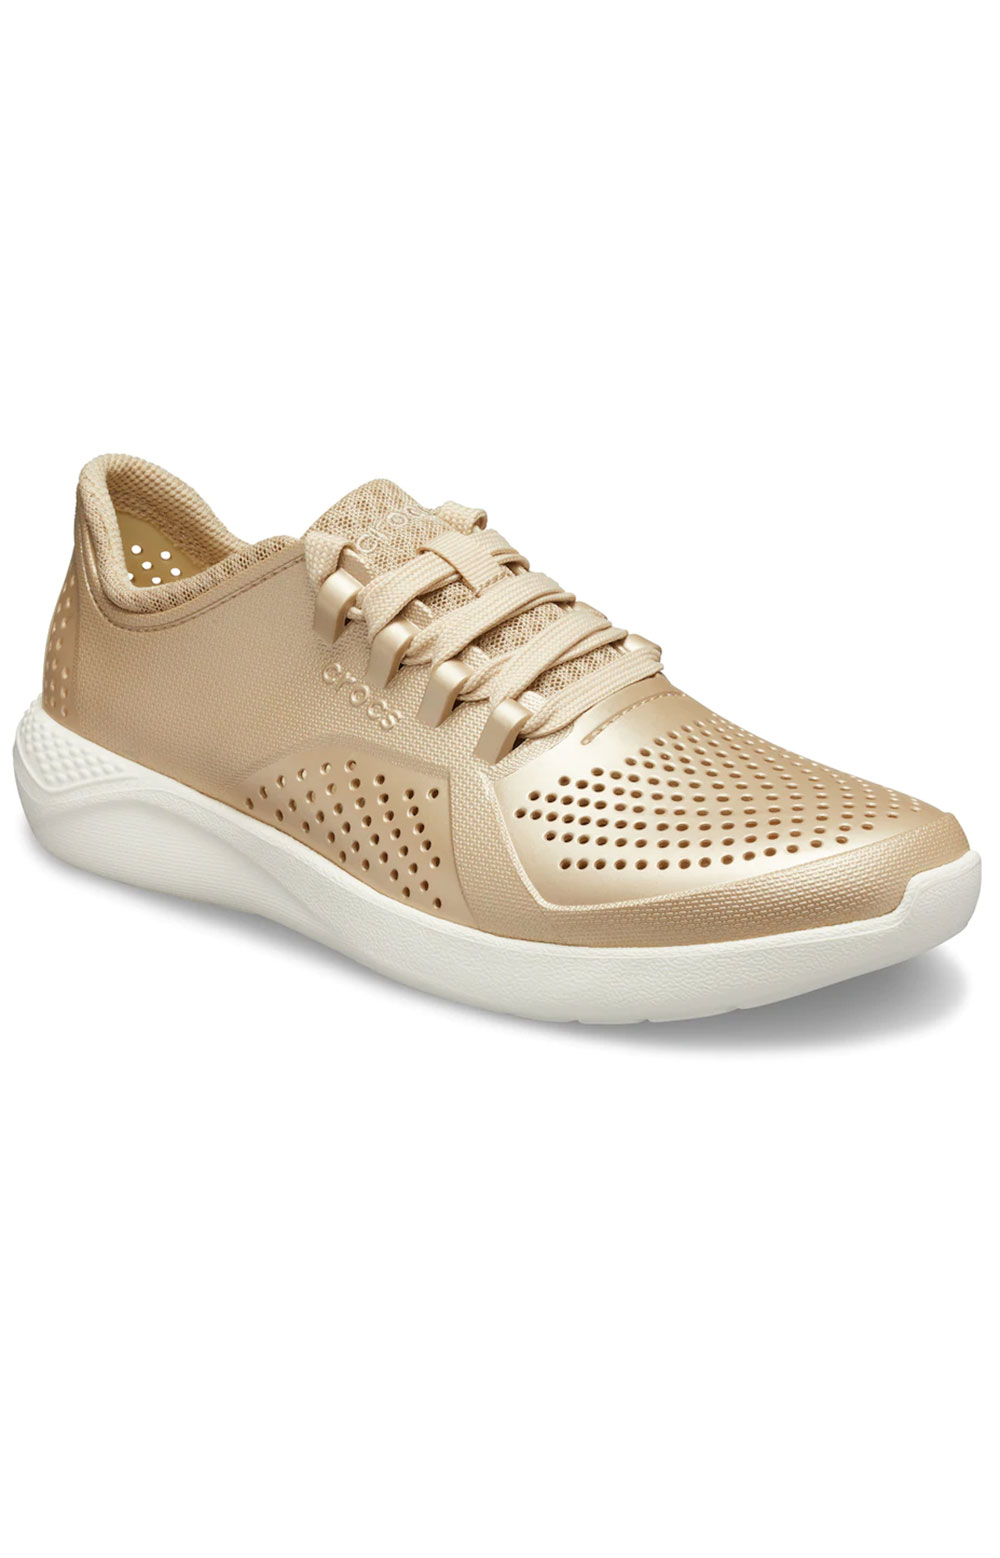 LiteRide Pacer Shoes - Metallic Champagne  2